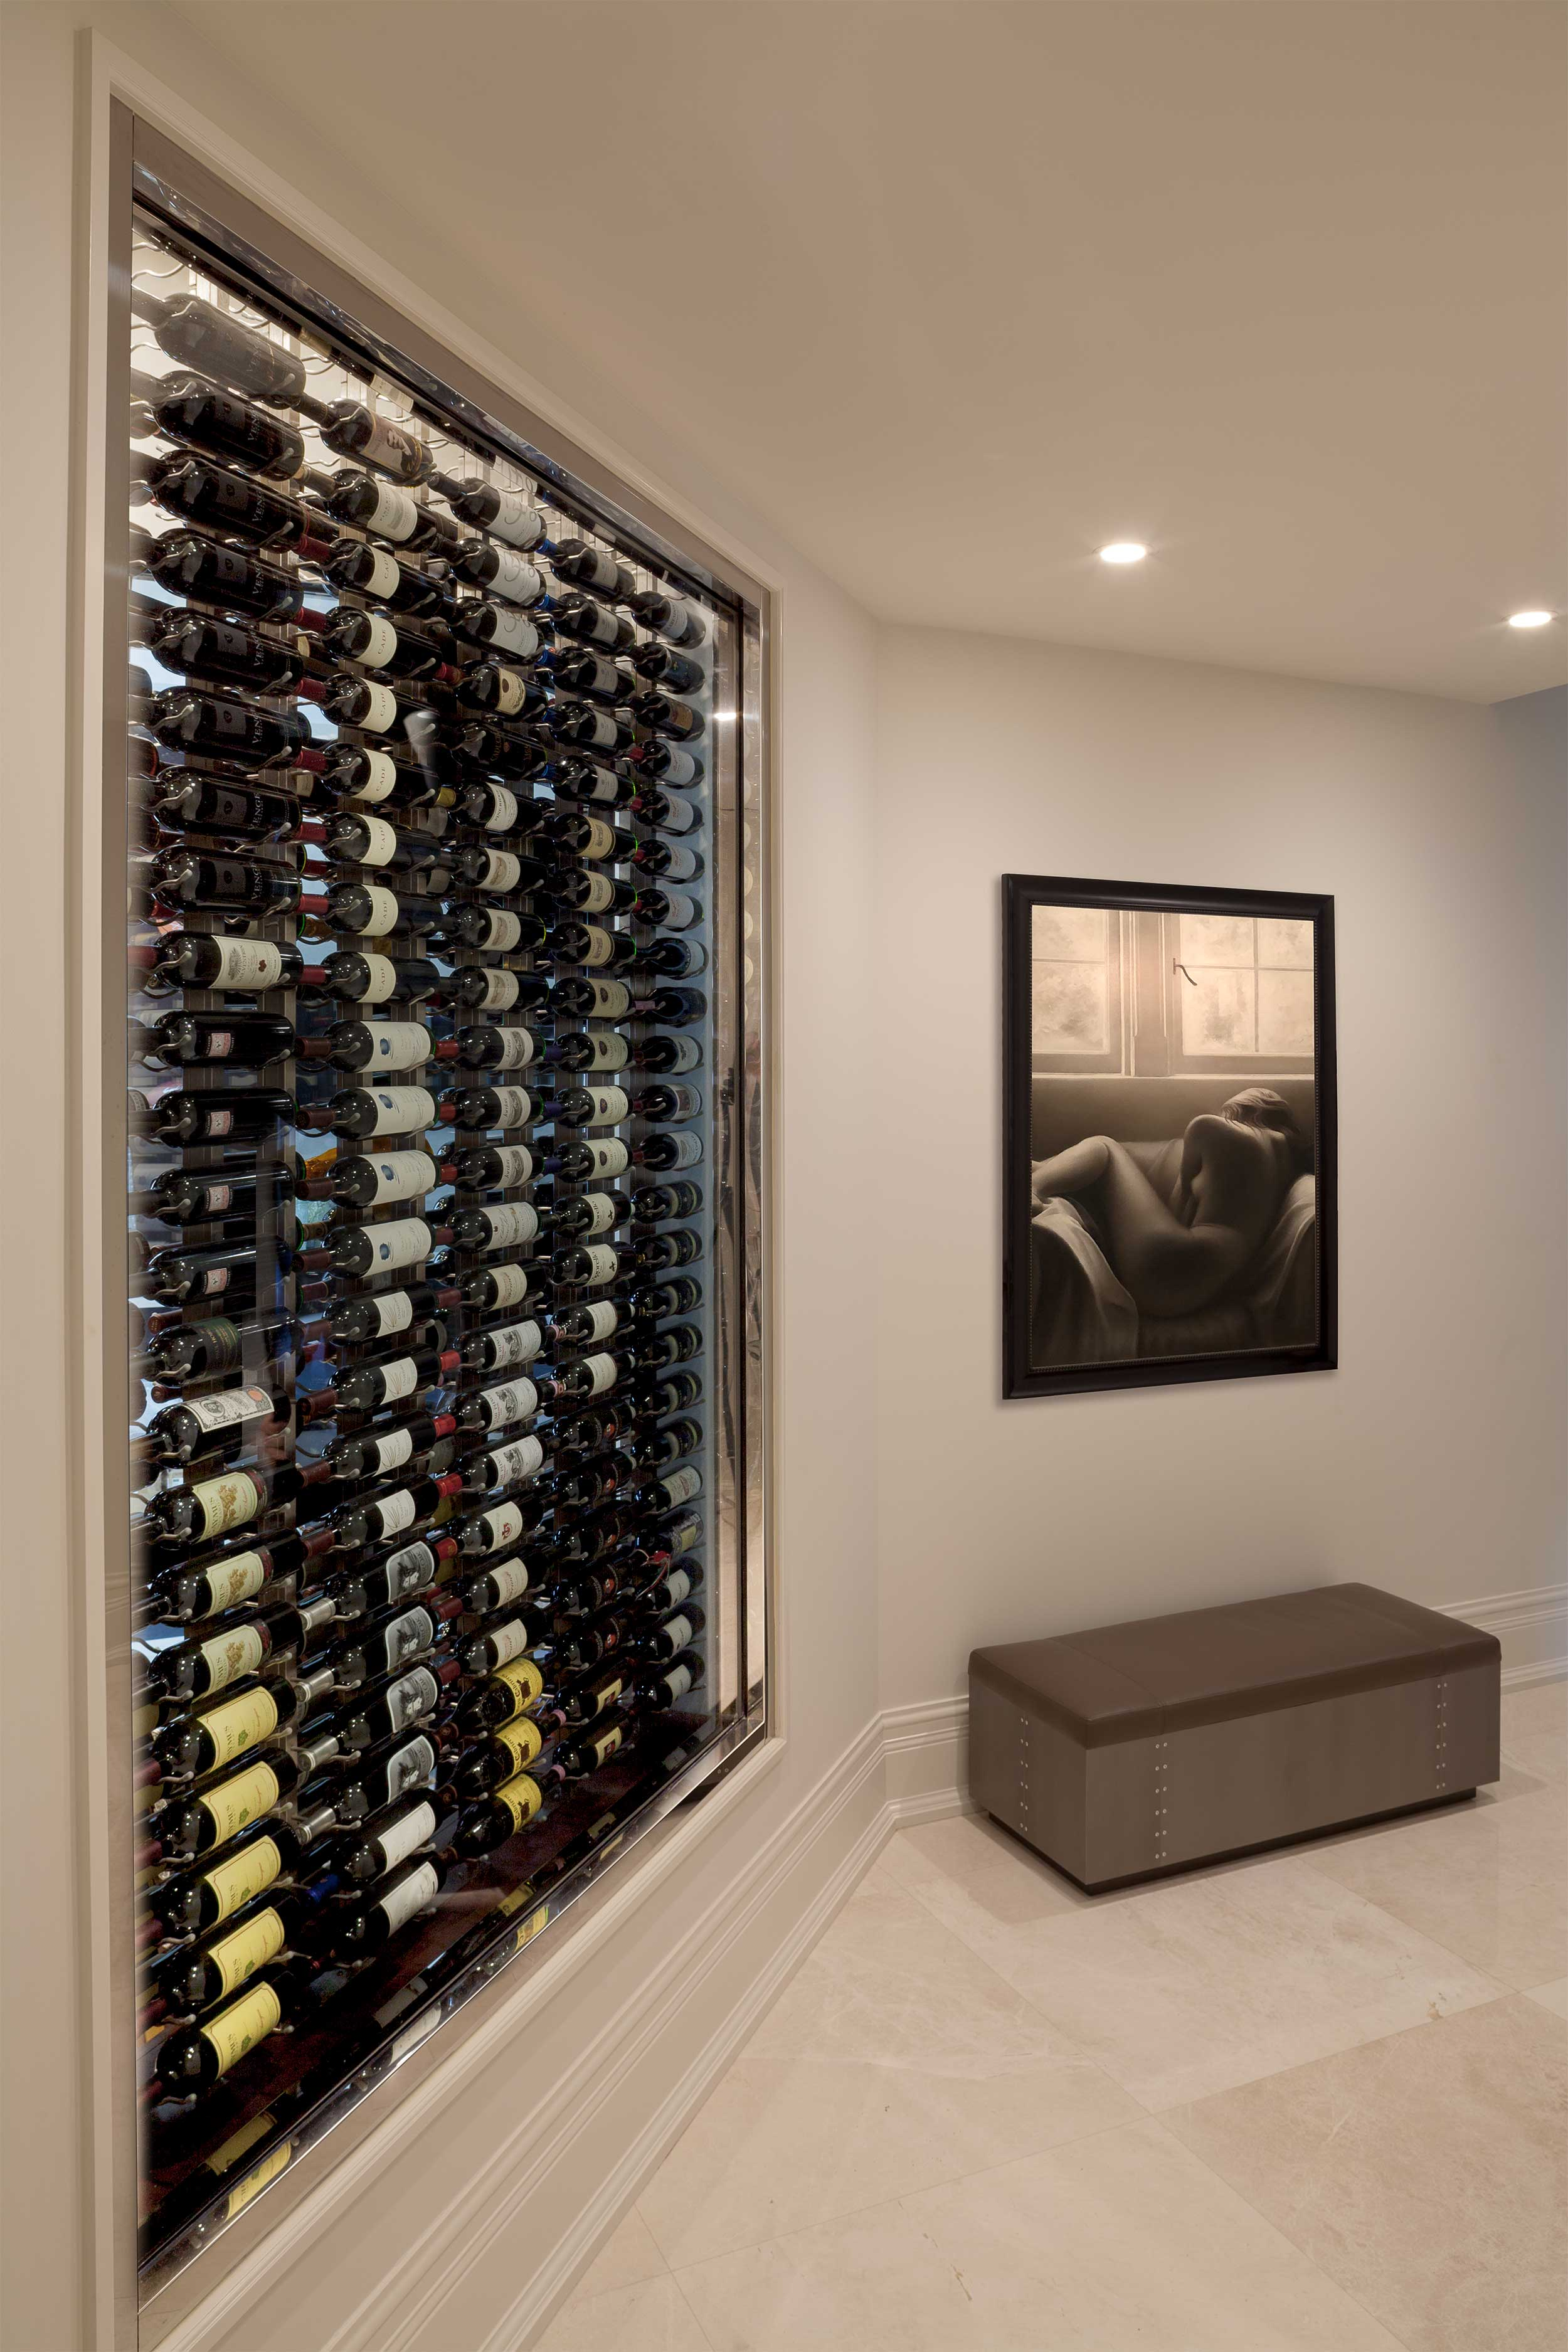 Wine cellar in Residential Interior Design Project in Jupiter, FL